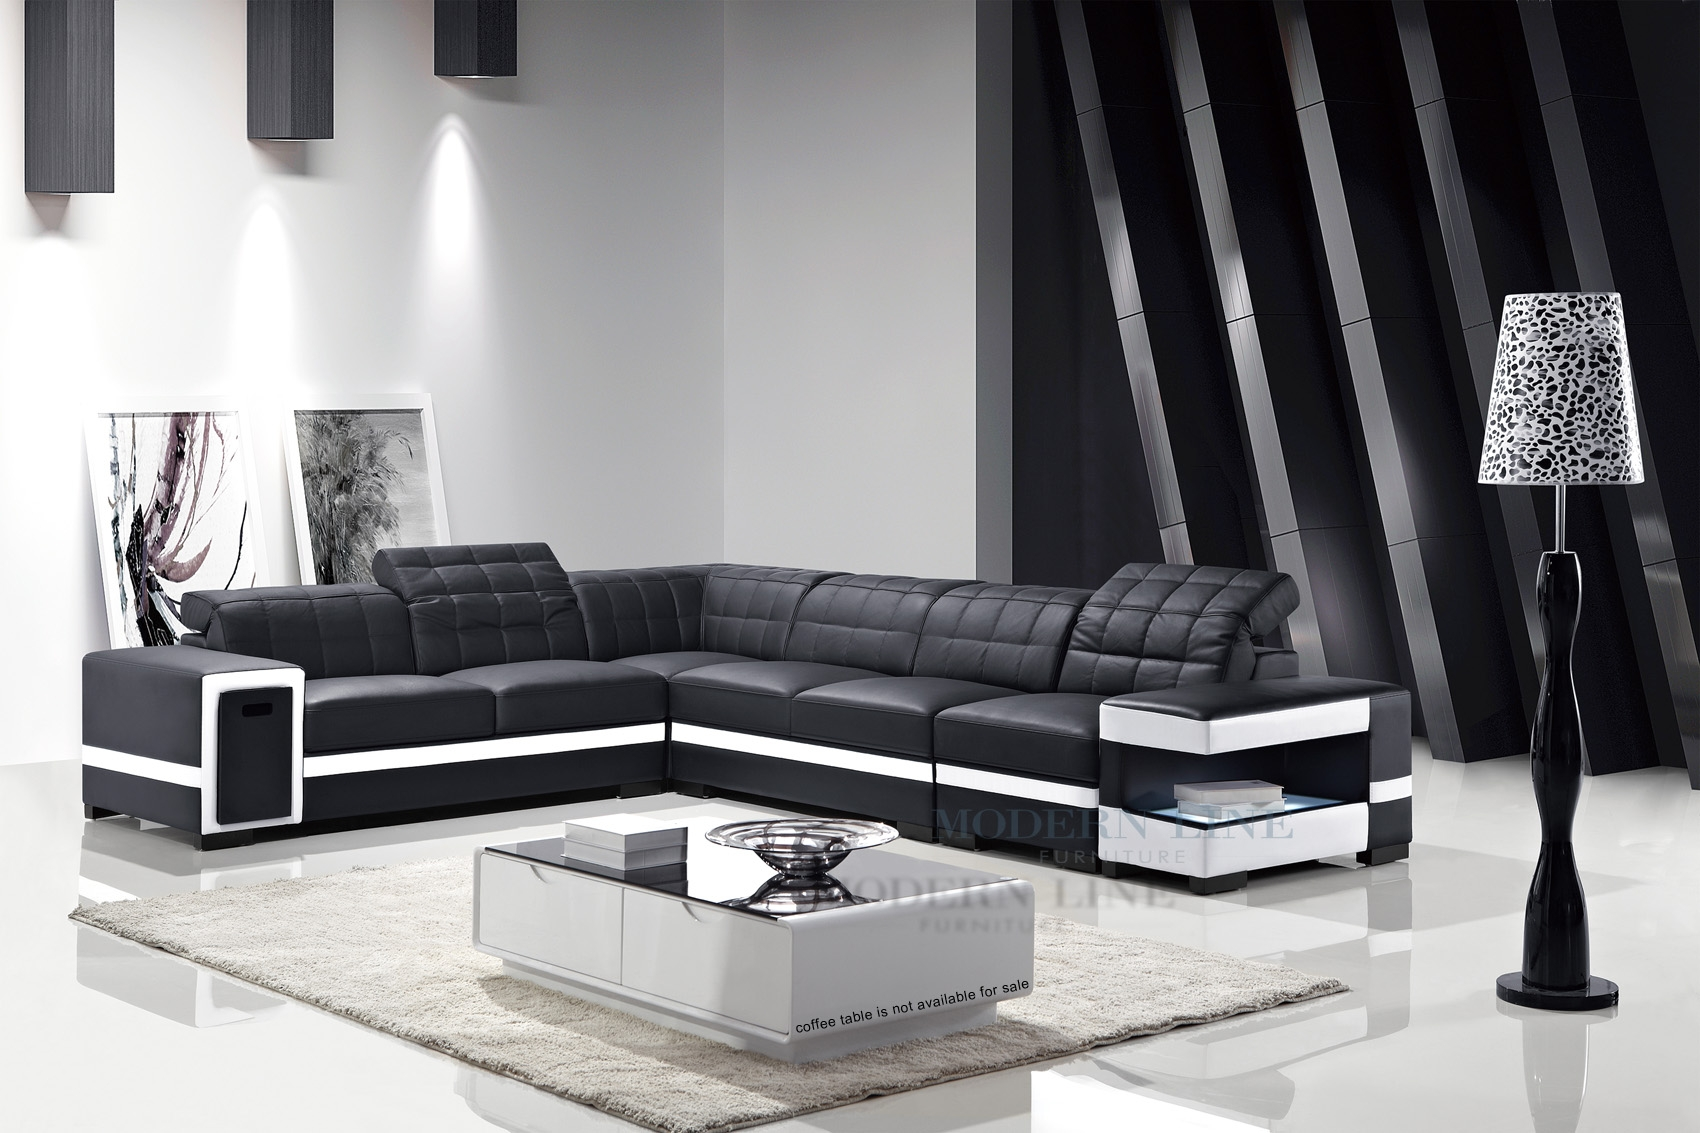 Black And White Sectional Sofas Cleanupflorida With Black And White Sectional Sofa (View 9 of 12)